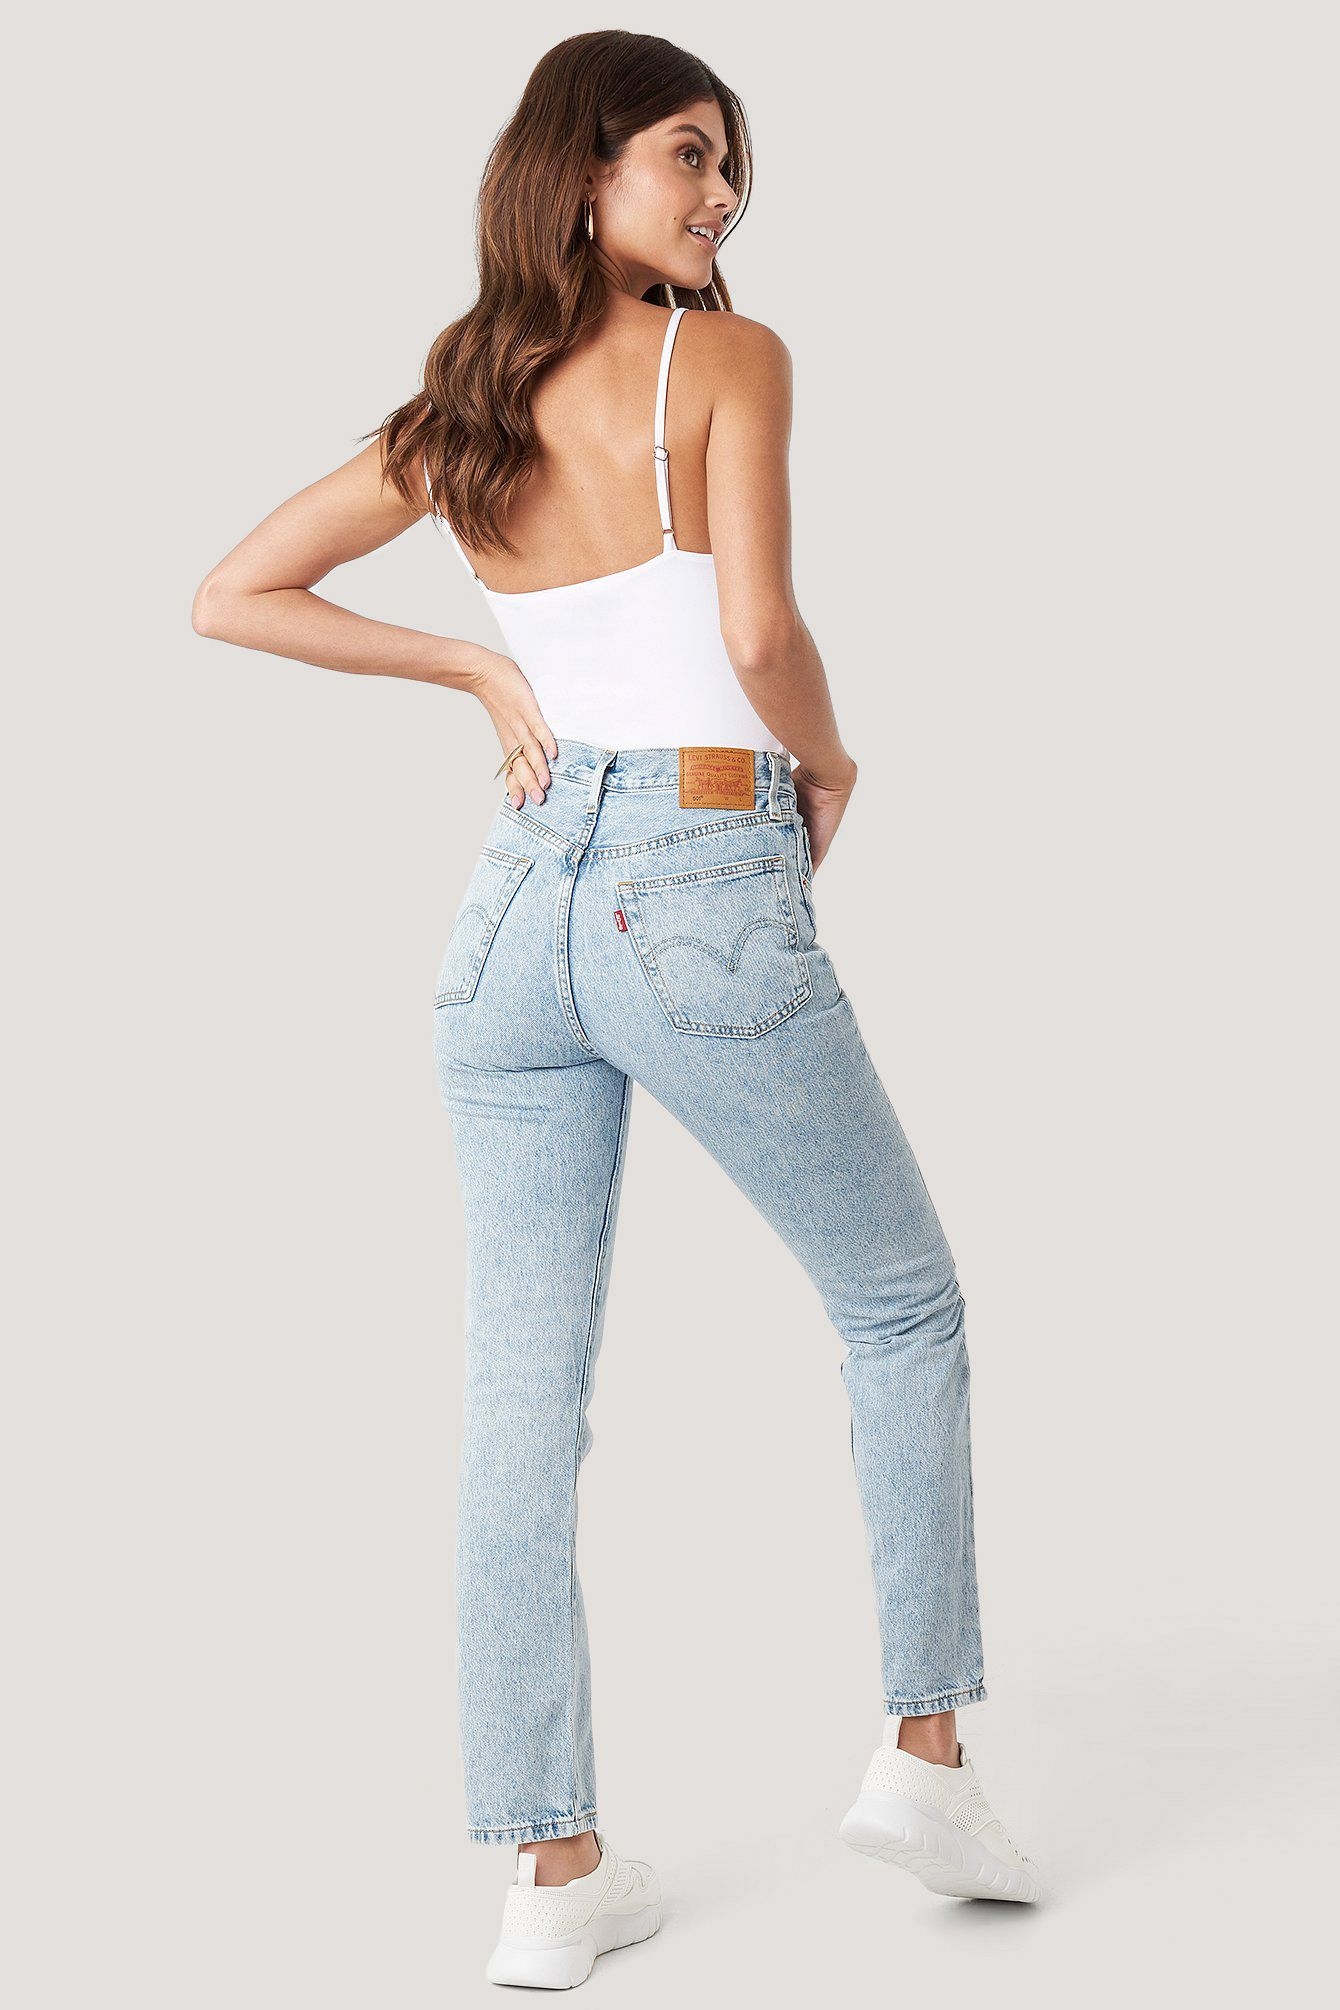 Jeans For Women Skinny Jeans For Women Plus Size Fashion Tops Cargo Jeans For Men Grey Skinny Trousers Womens